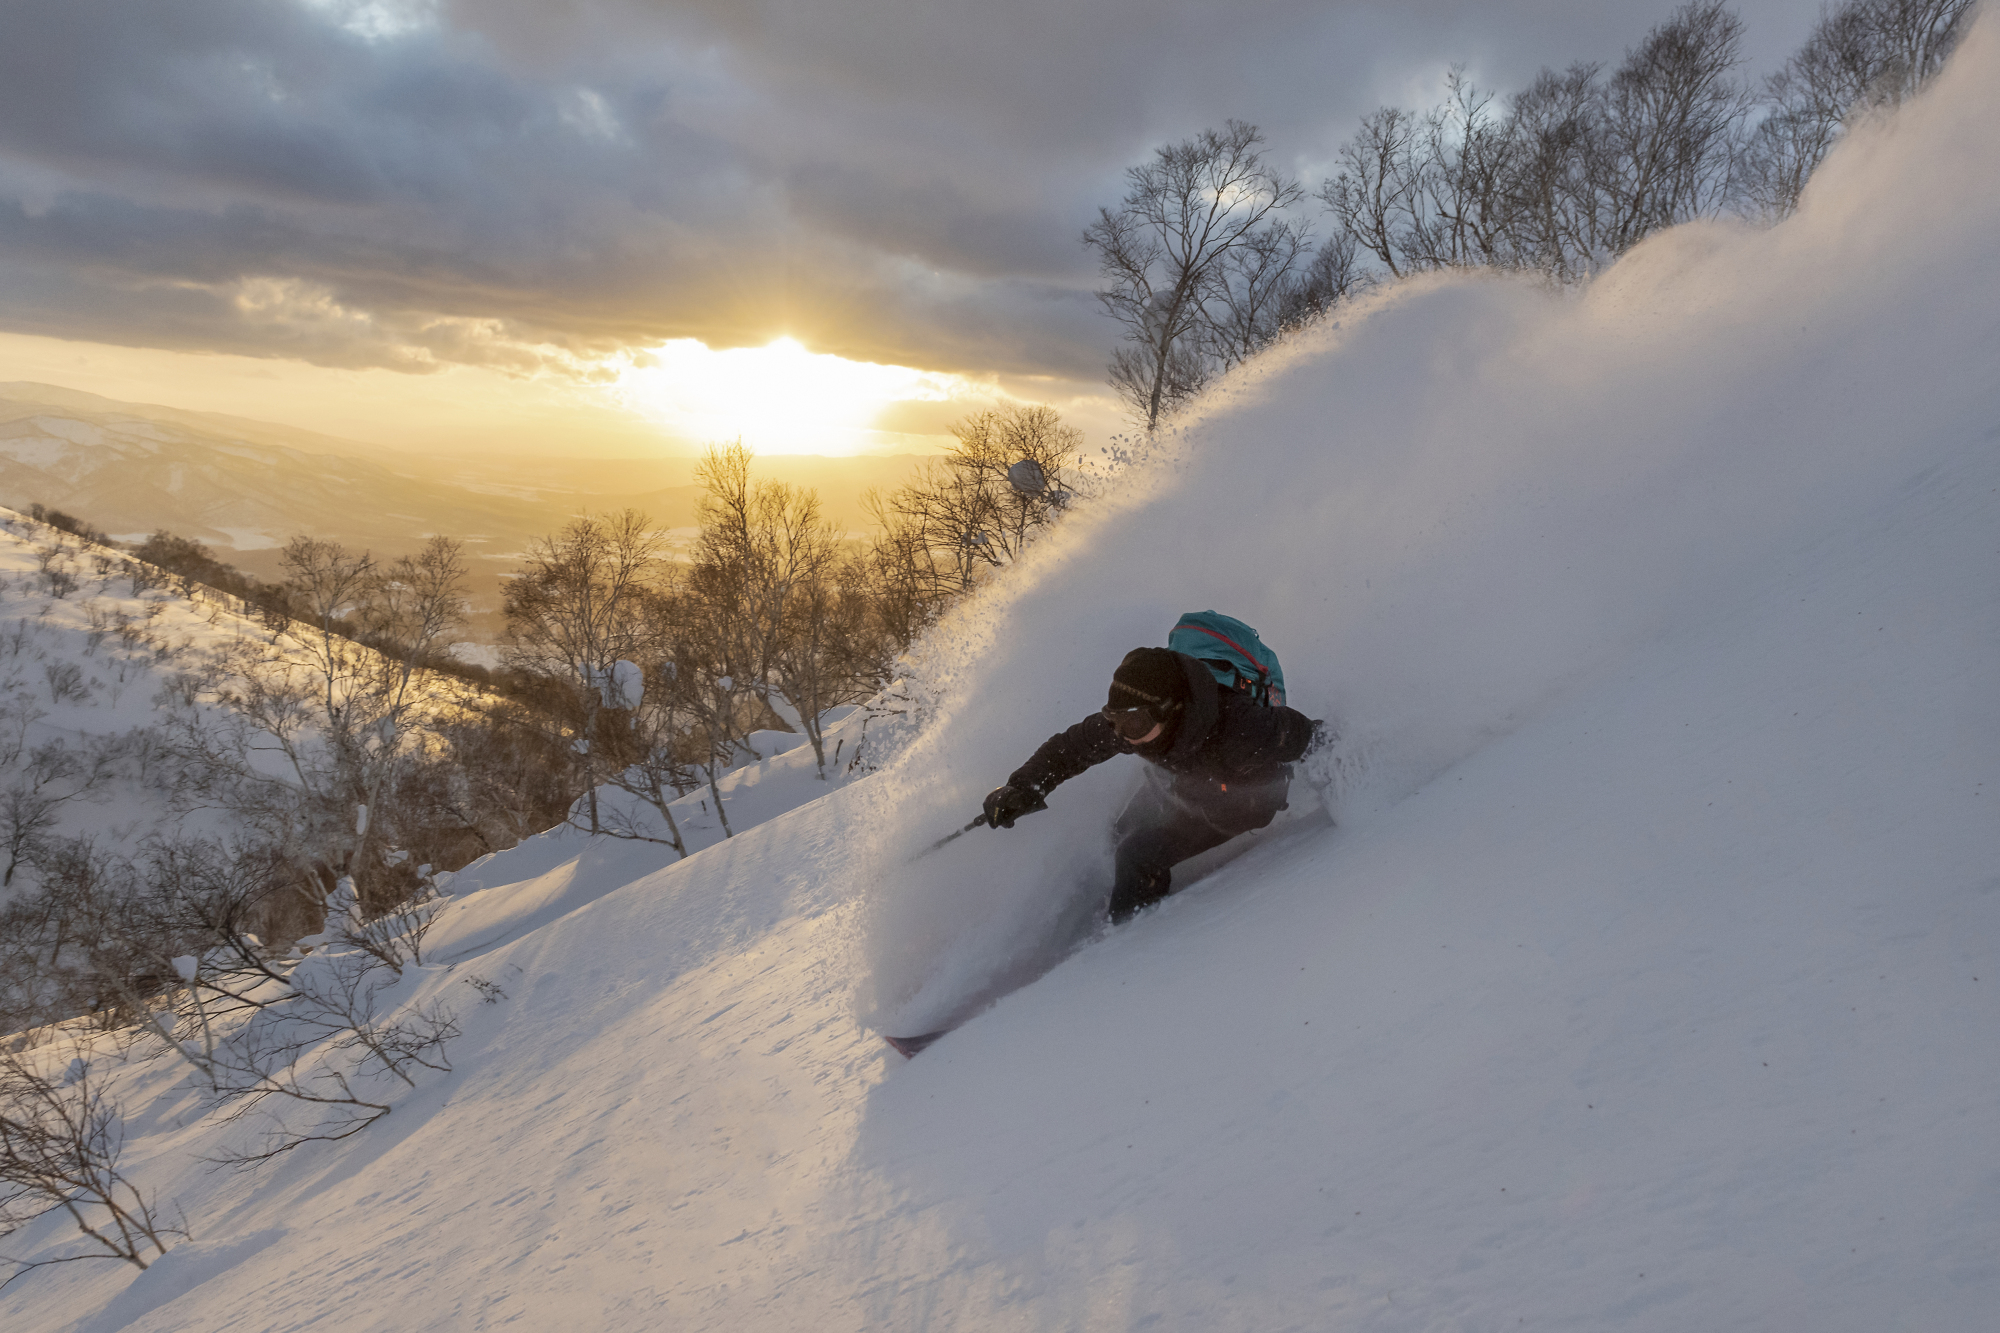 The Niseko ski resort area is renowned for its high-quality powder snow and premium trails. | NISEKO TOURISM